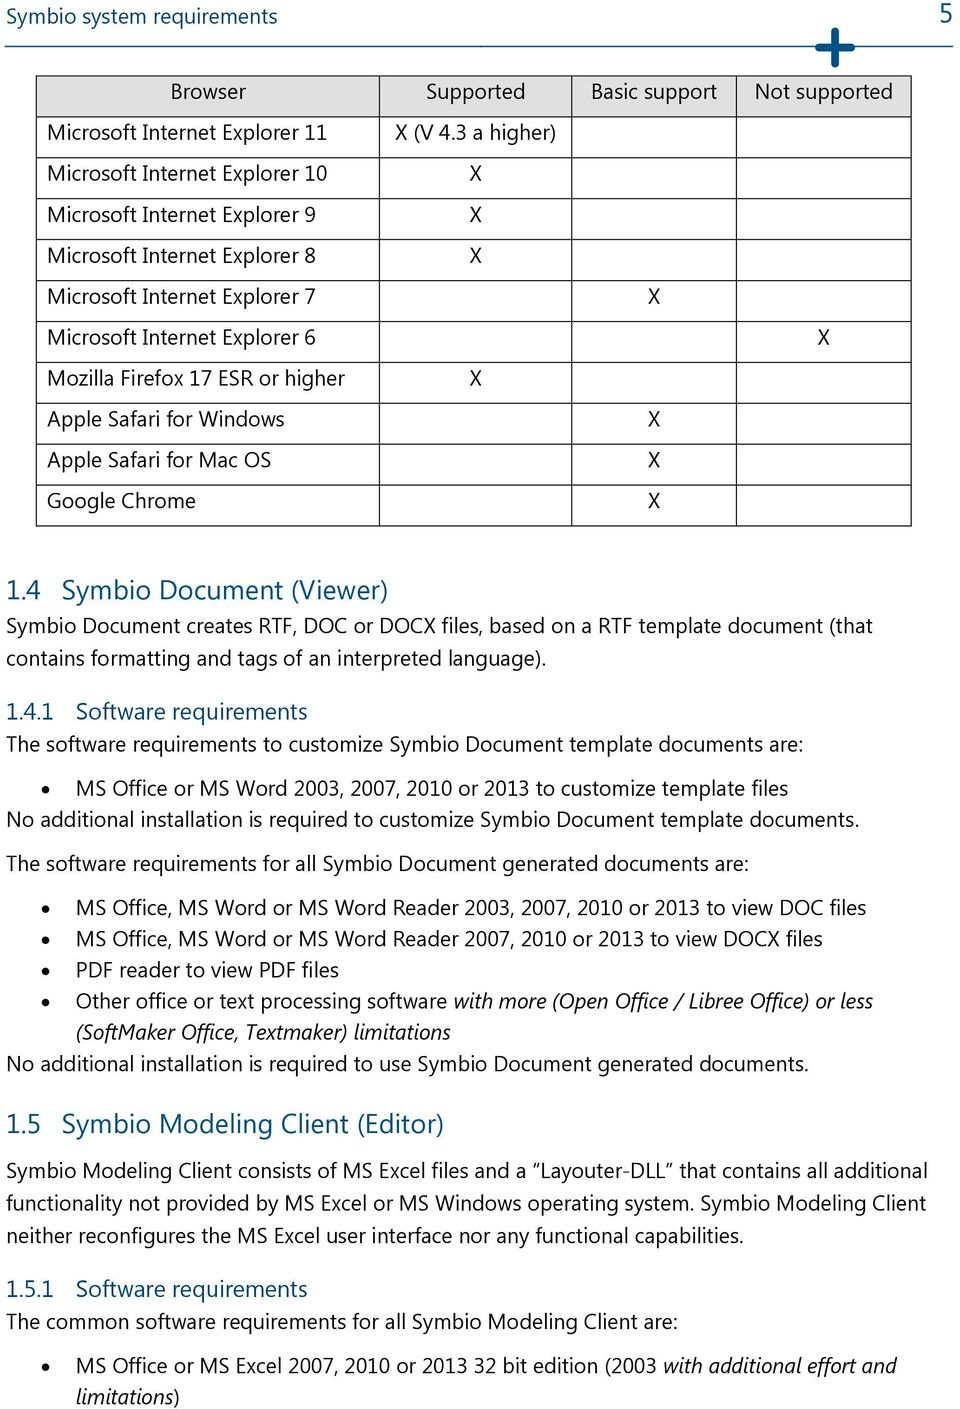 4 Symbio Document (Viewer) Symbio Document creates RTF, DOC or DOC files, based on a RTF template document (that contains formatting and tags of an interpreted language). 1.4.1 Software requirements